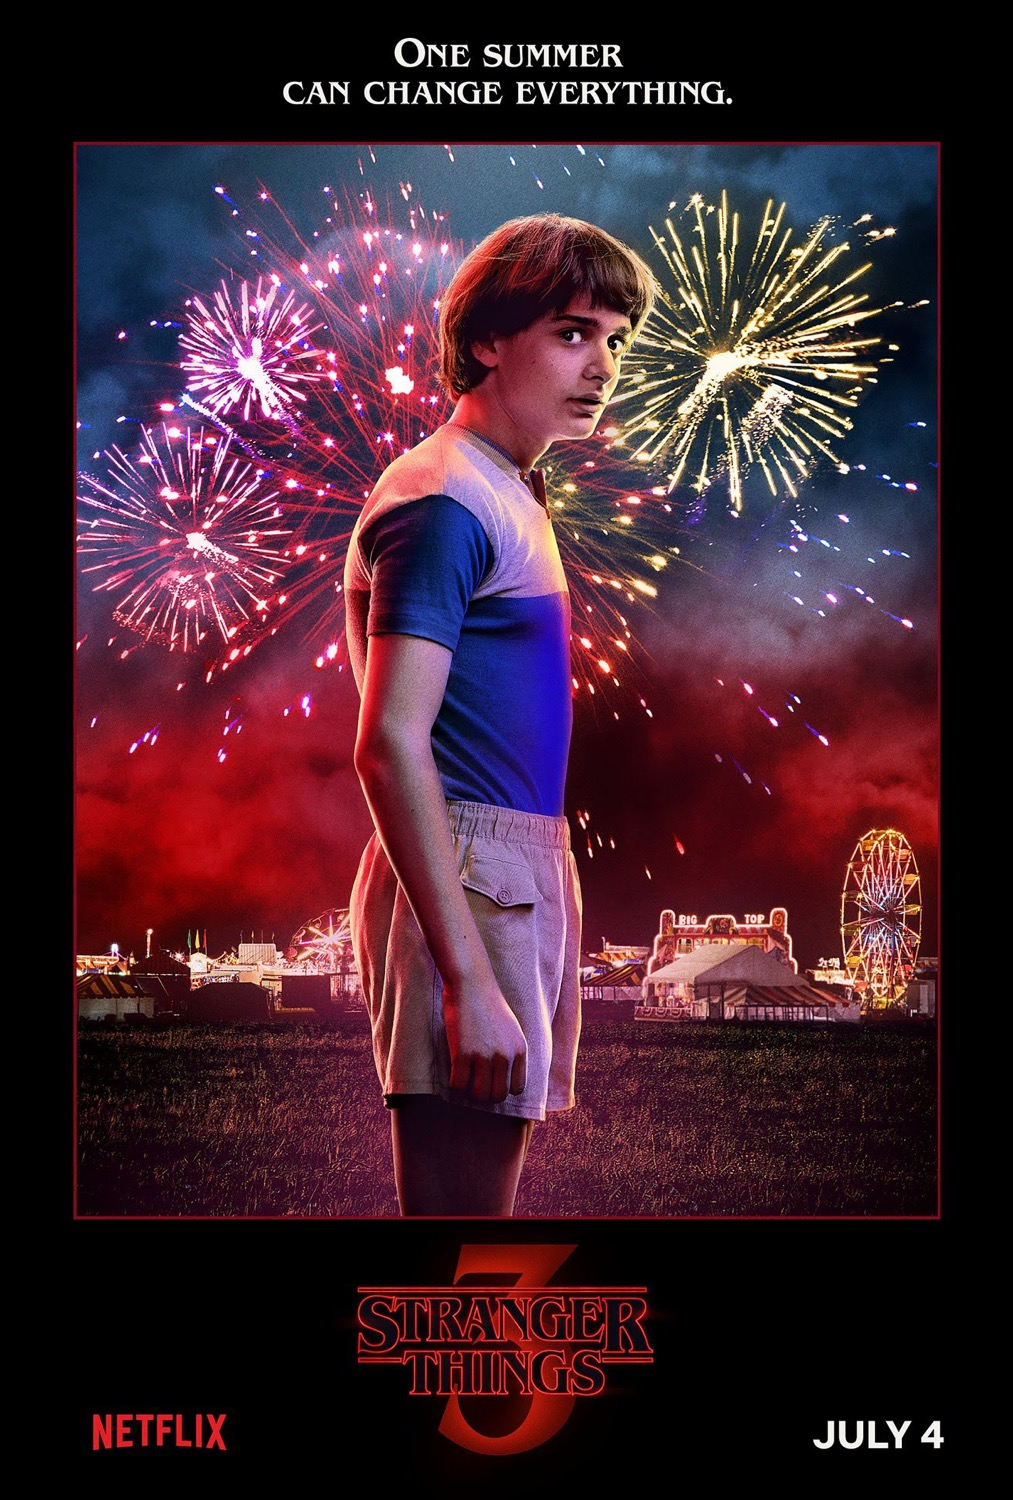 Stranger Things S3 Character Art